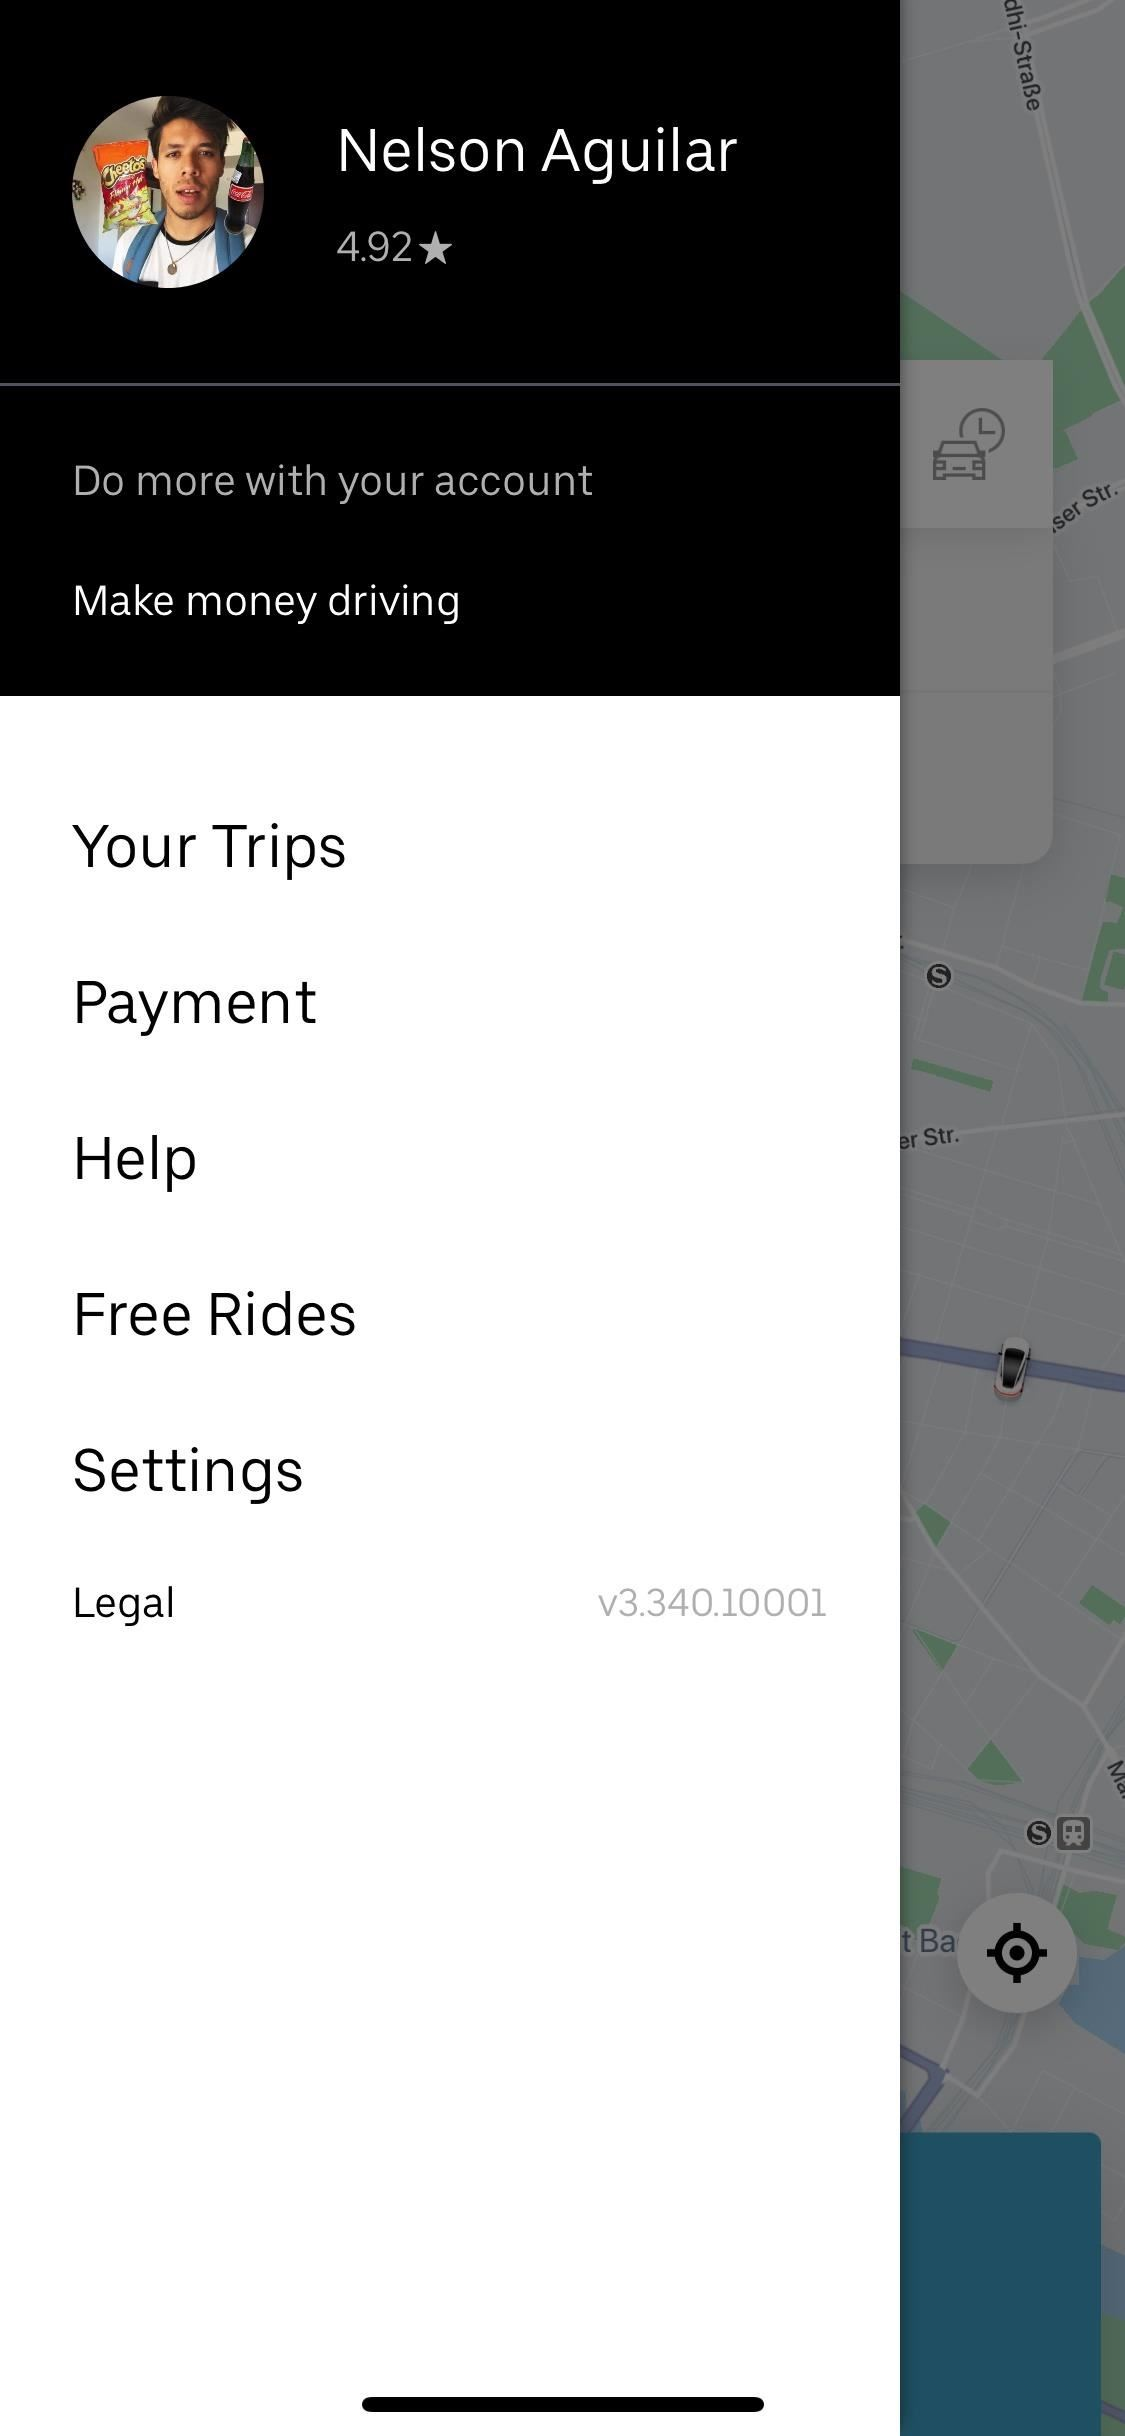 How to recover your lost item from an Uber driver (and what to do if he does not respond)